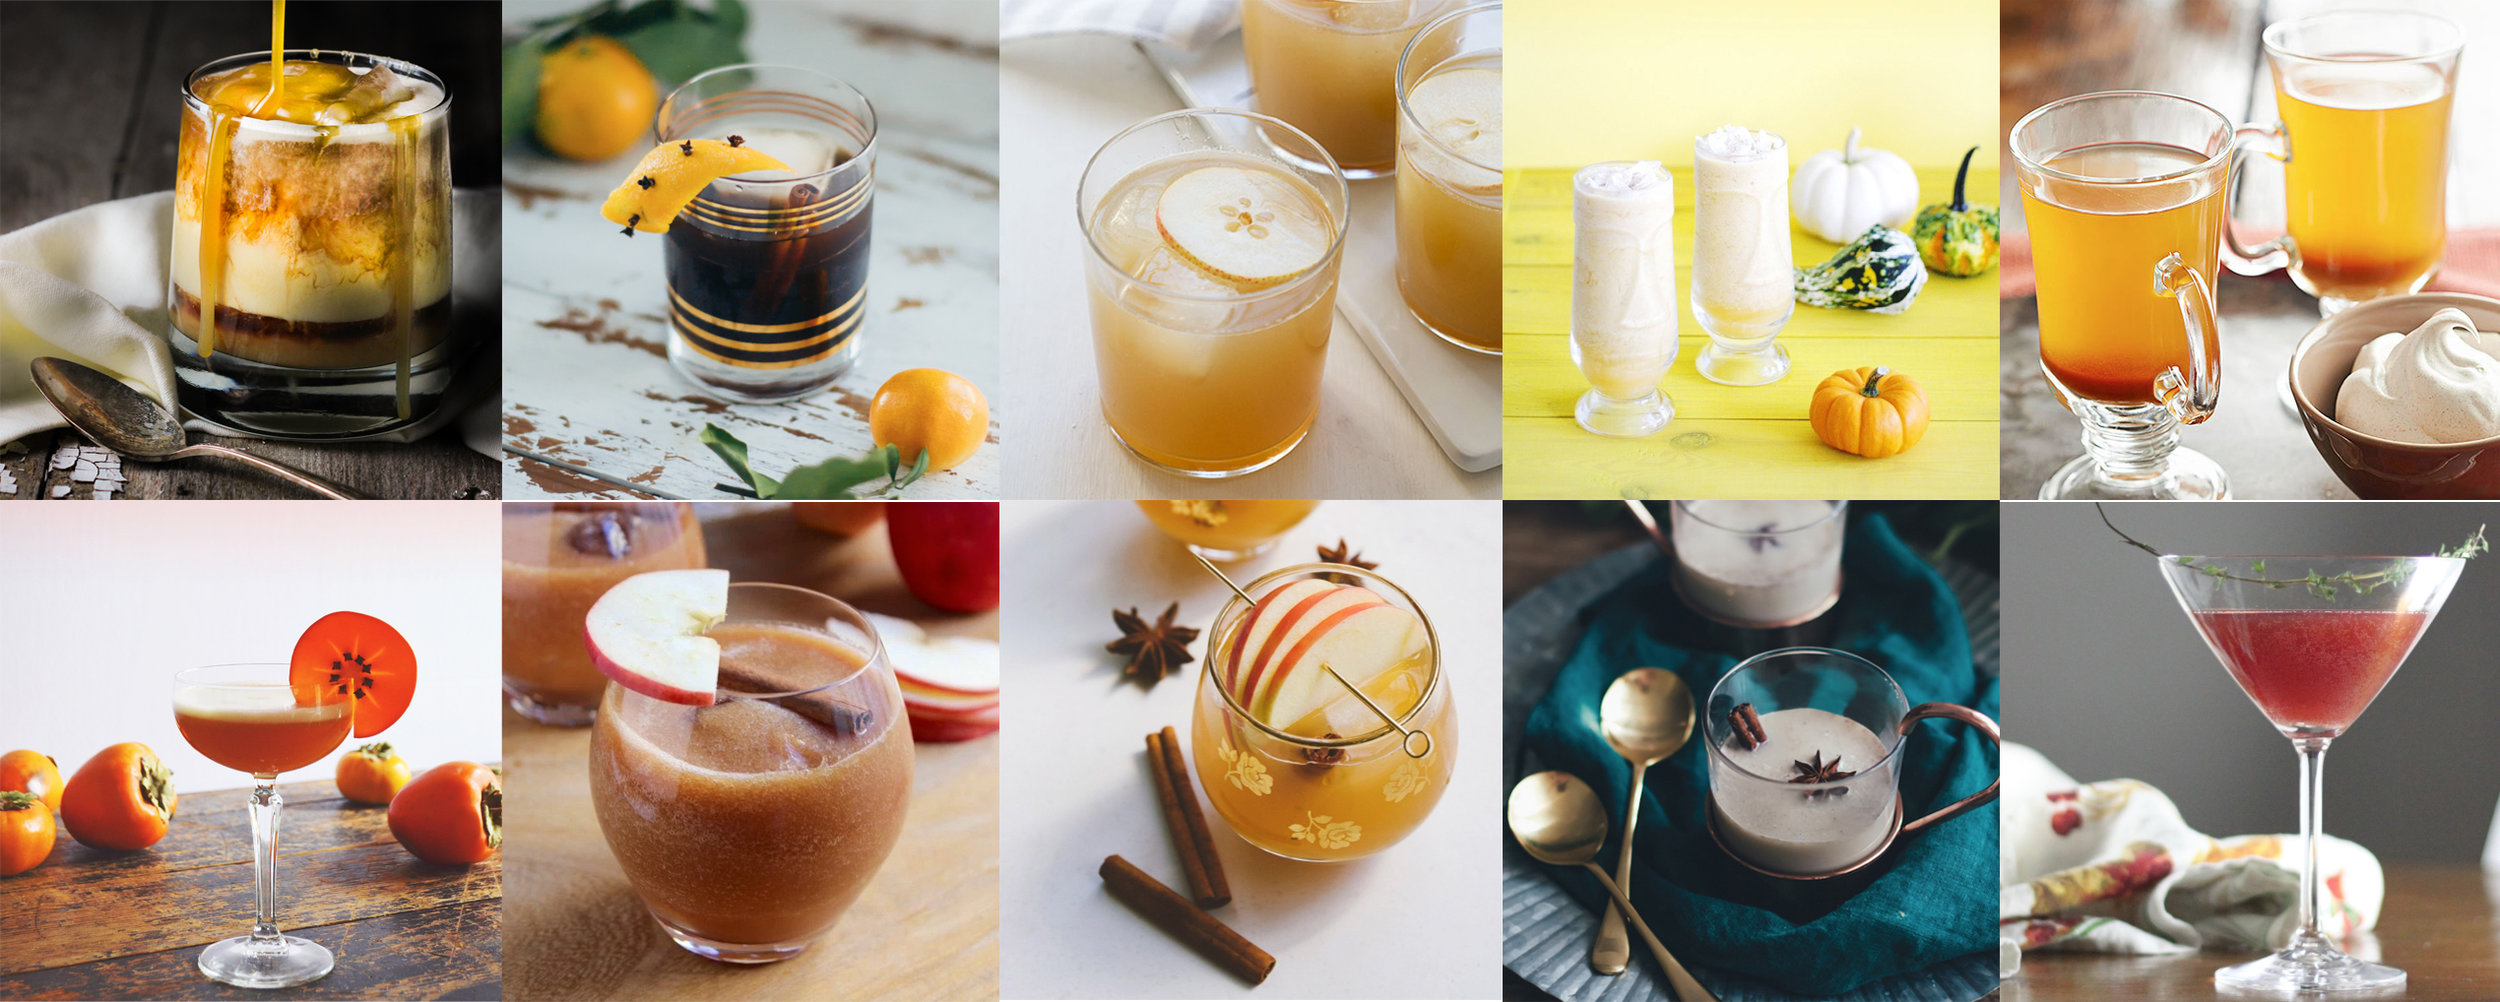 10 Boozy Thanksgiving Cocktails | Drinkingwithchickens.com for BHG.com